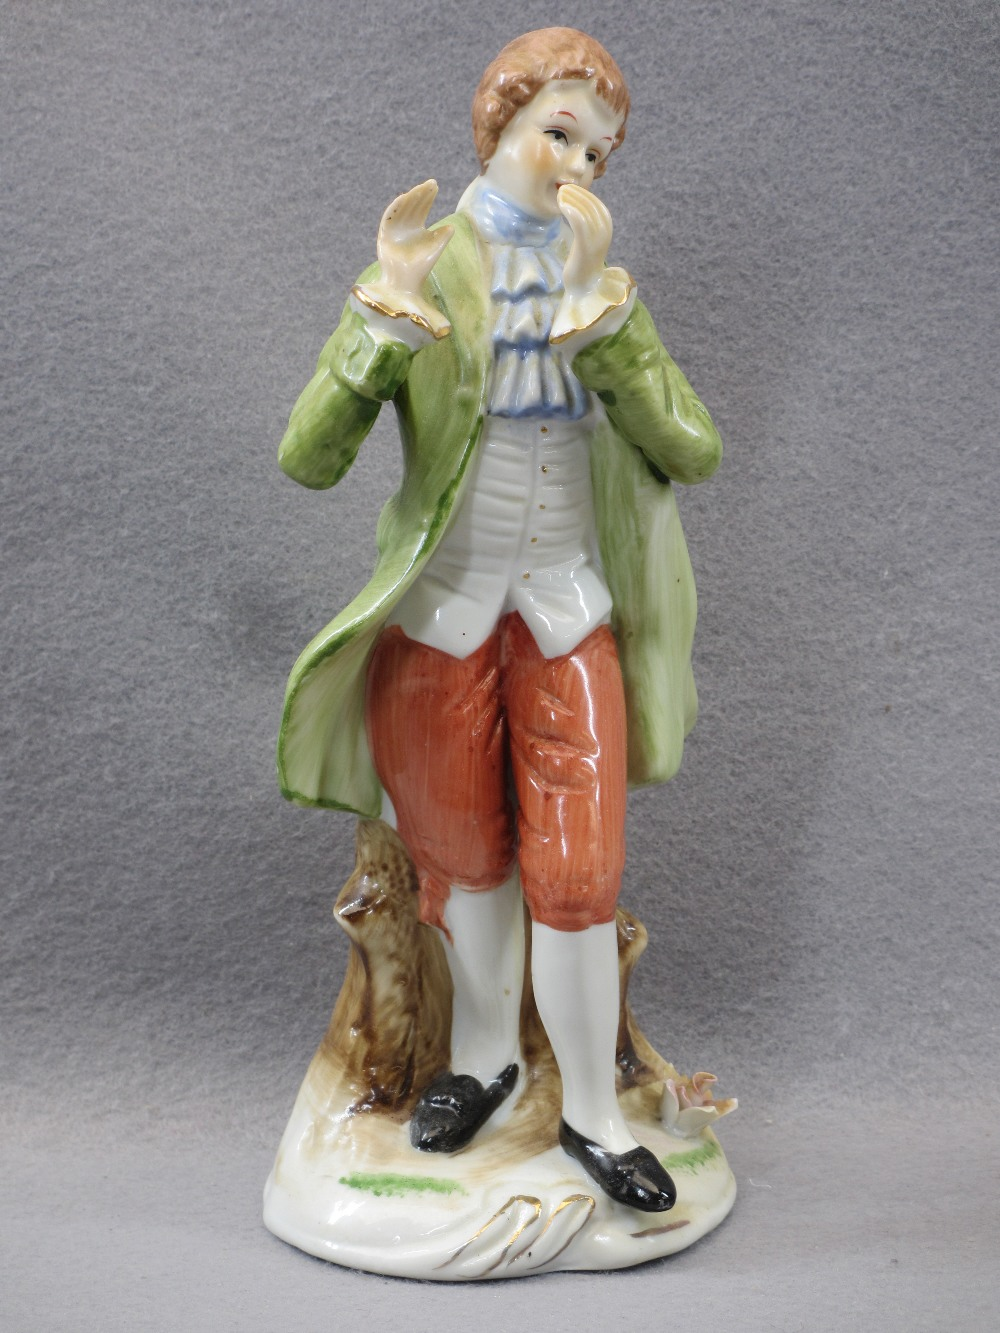 PORCELAIN & COMPOSITION CABINET FIGURINES, A COLLECTION including a Sitzendorf group of young man - Image 2 of 7